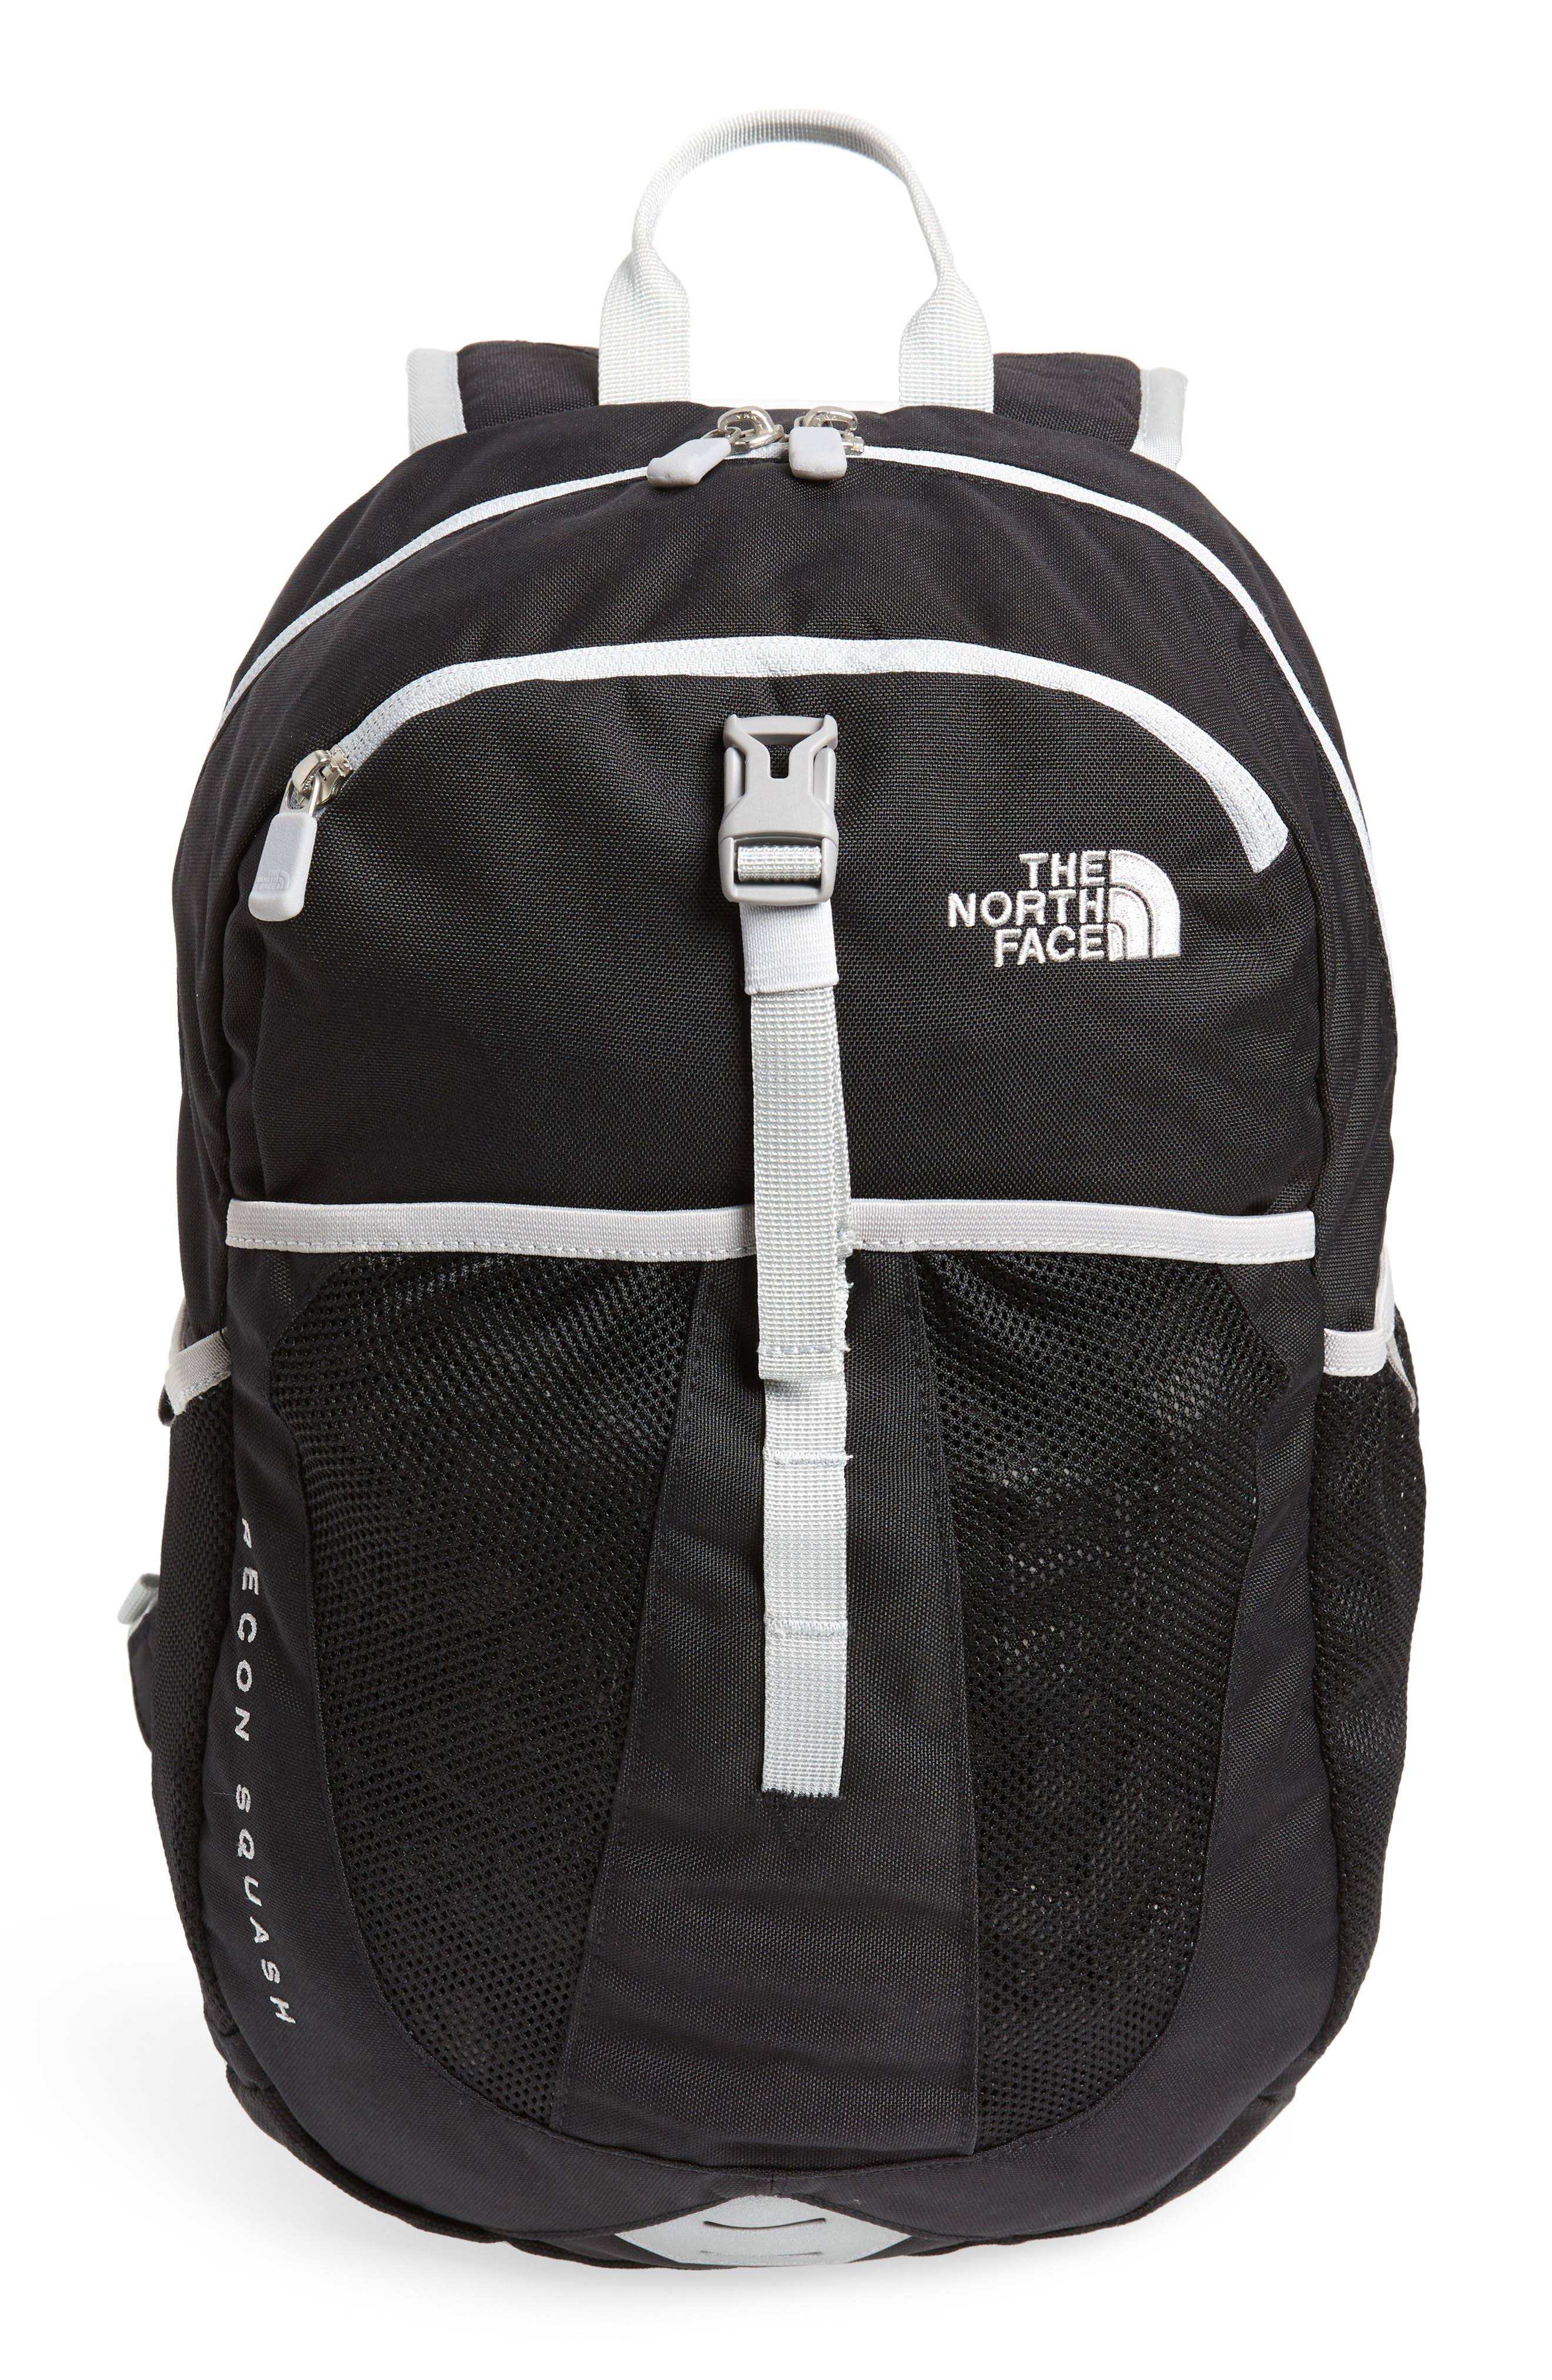 Recon Squash Backpack,                             Main thumbnail 1, color,                             Tnf Black/ High Rise Grey